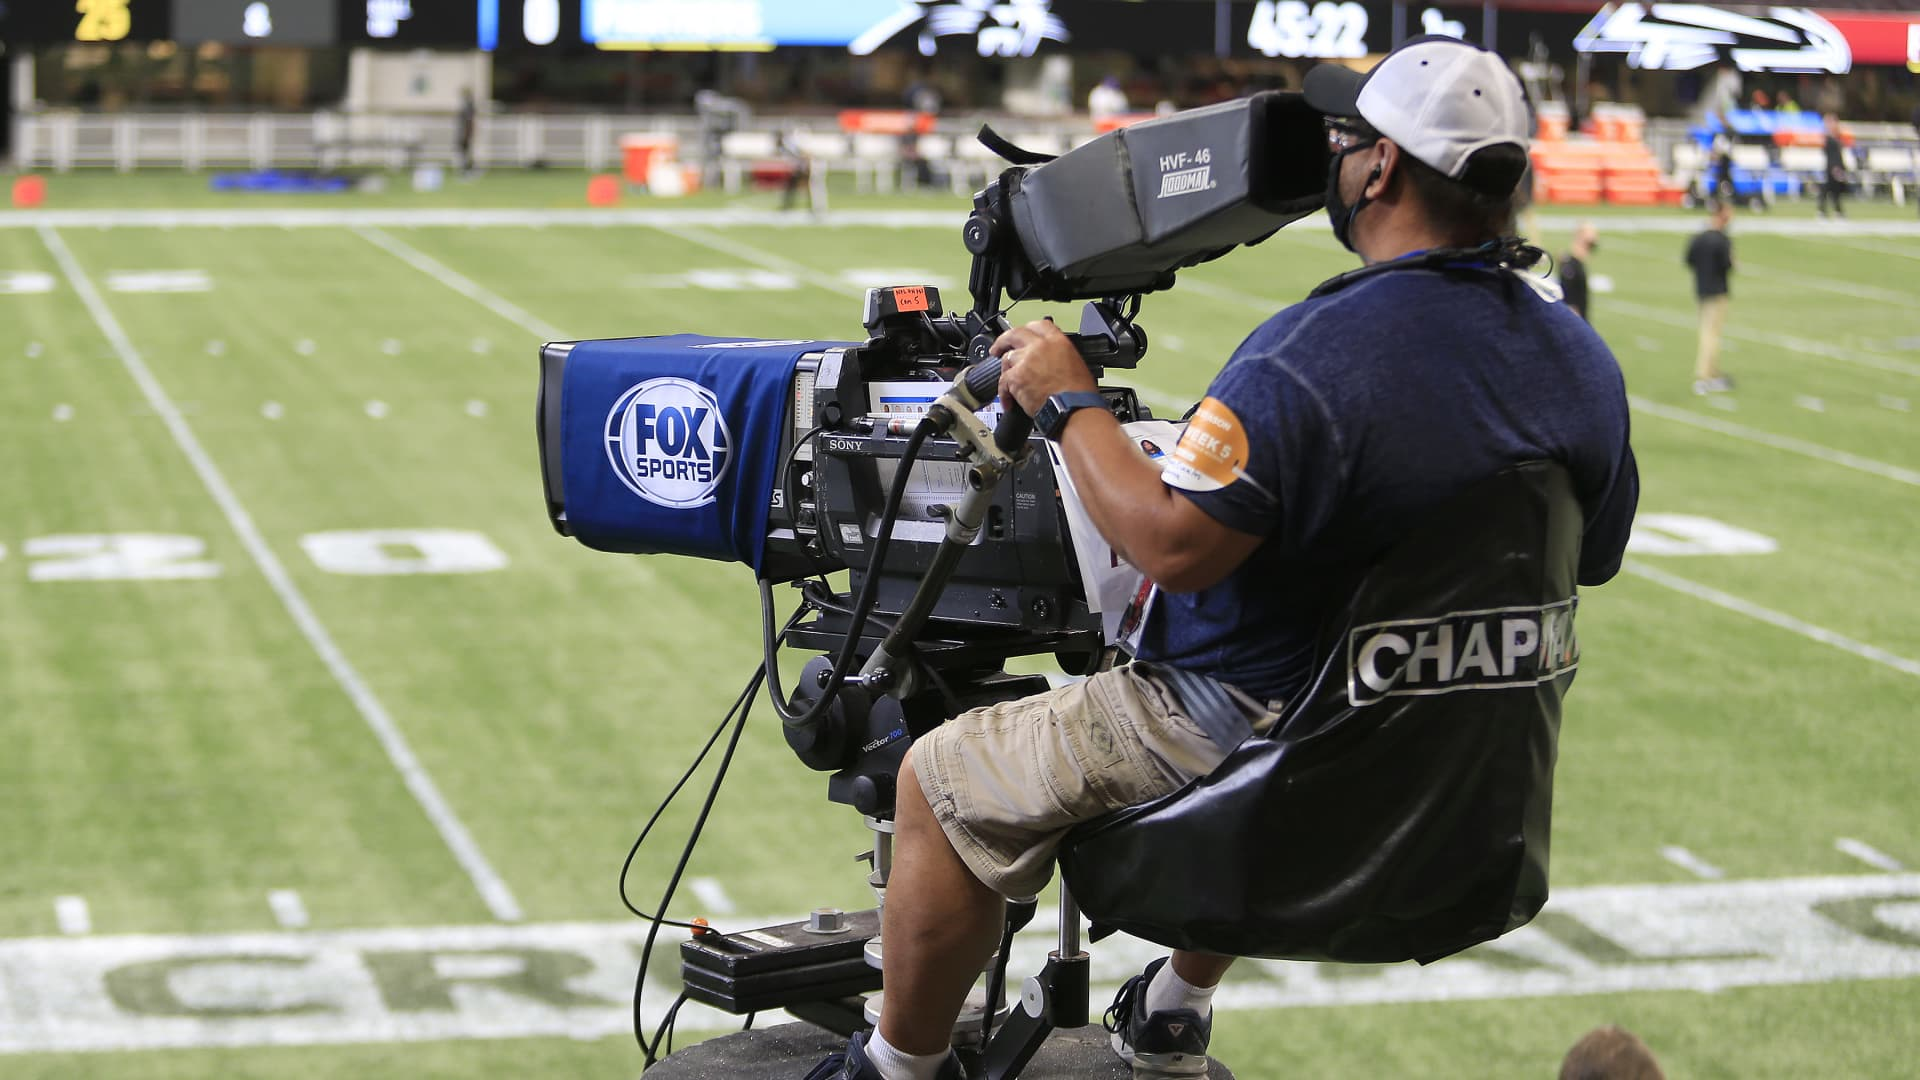 A FOX Sports TV camera operator during the week 5 NFL game between the Atlanta Falcons and the Carolina Panthers at Mercedes-Benz Stadium on October 11, 2020 in Atlanta, Georgia.